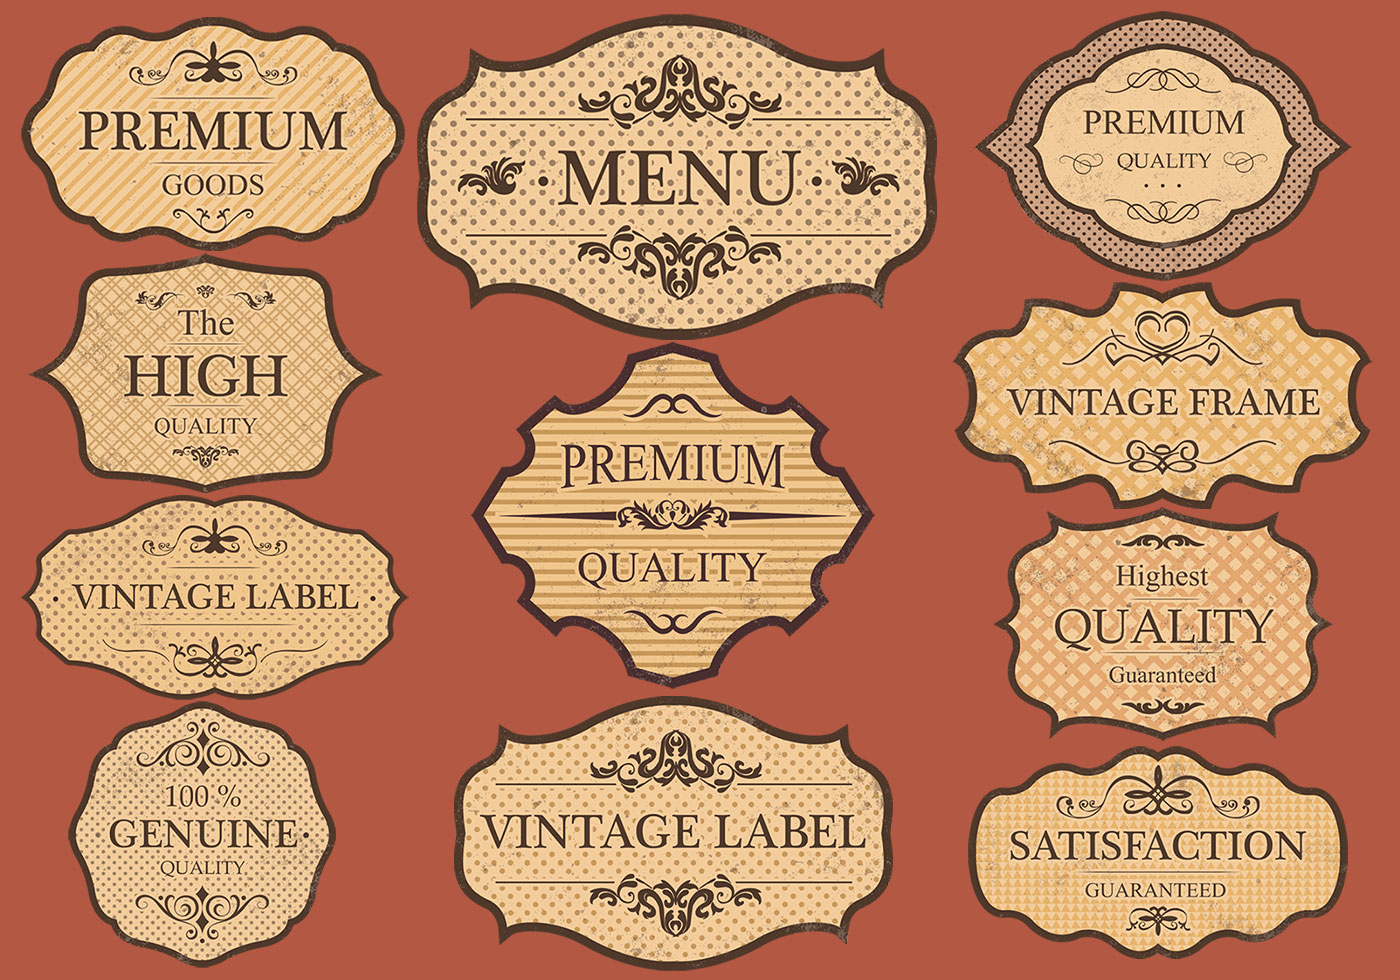 Vintage frame and label vector free vector art at vecteezy vintage labels vector set stopboris Image collections